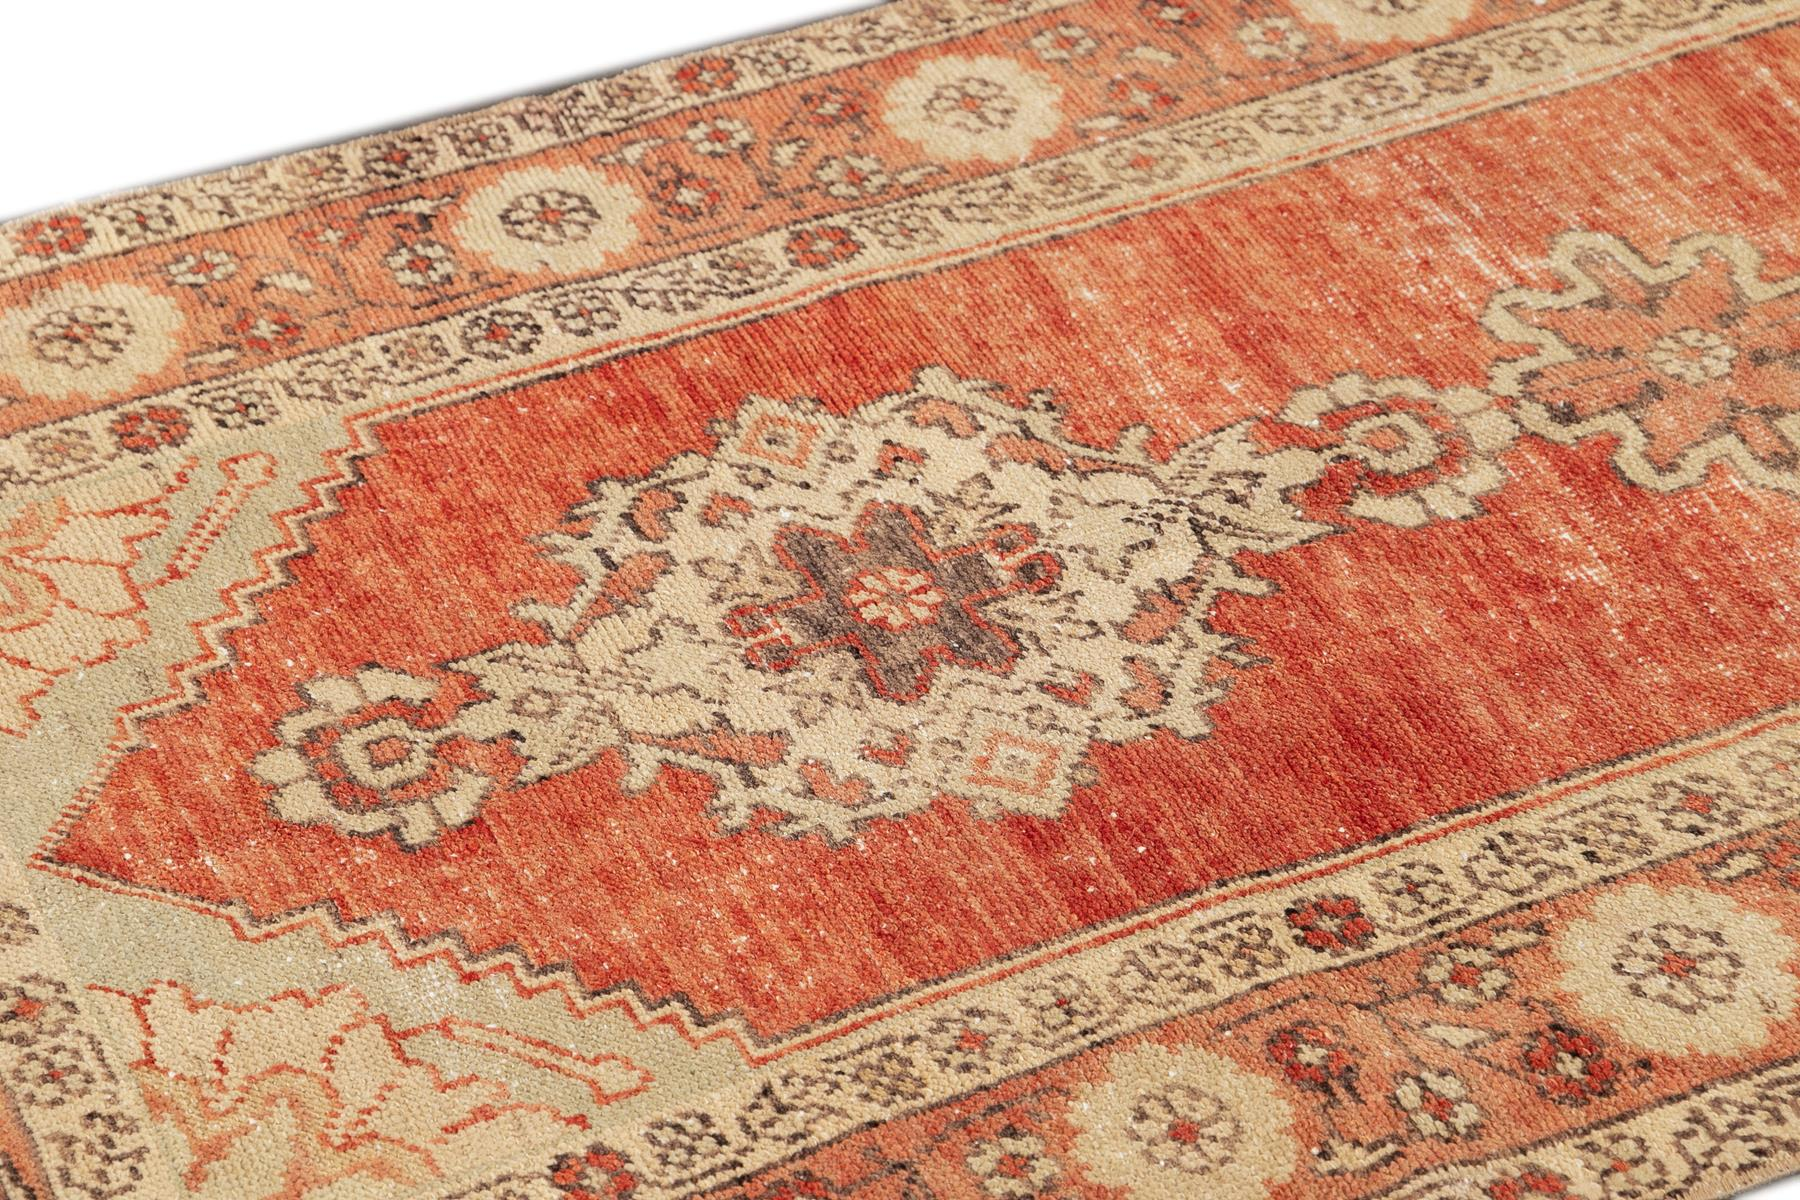 Vintage Turkish Anatolian Runner Rug, 3X10